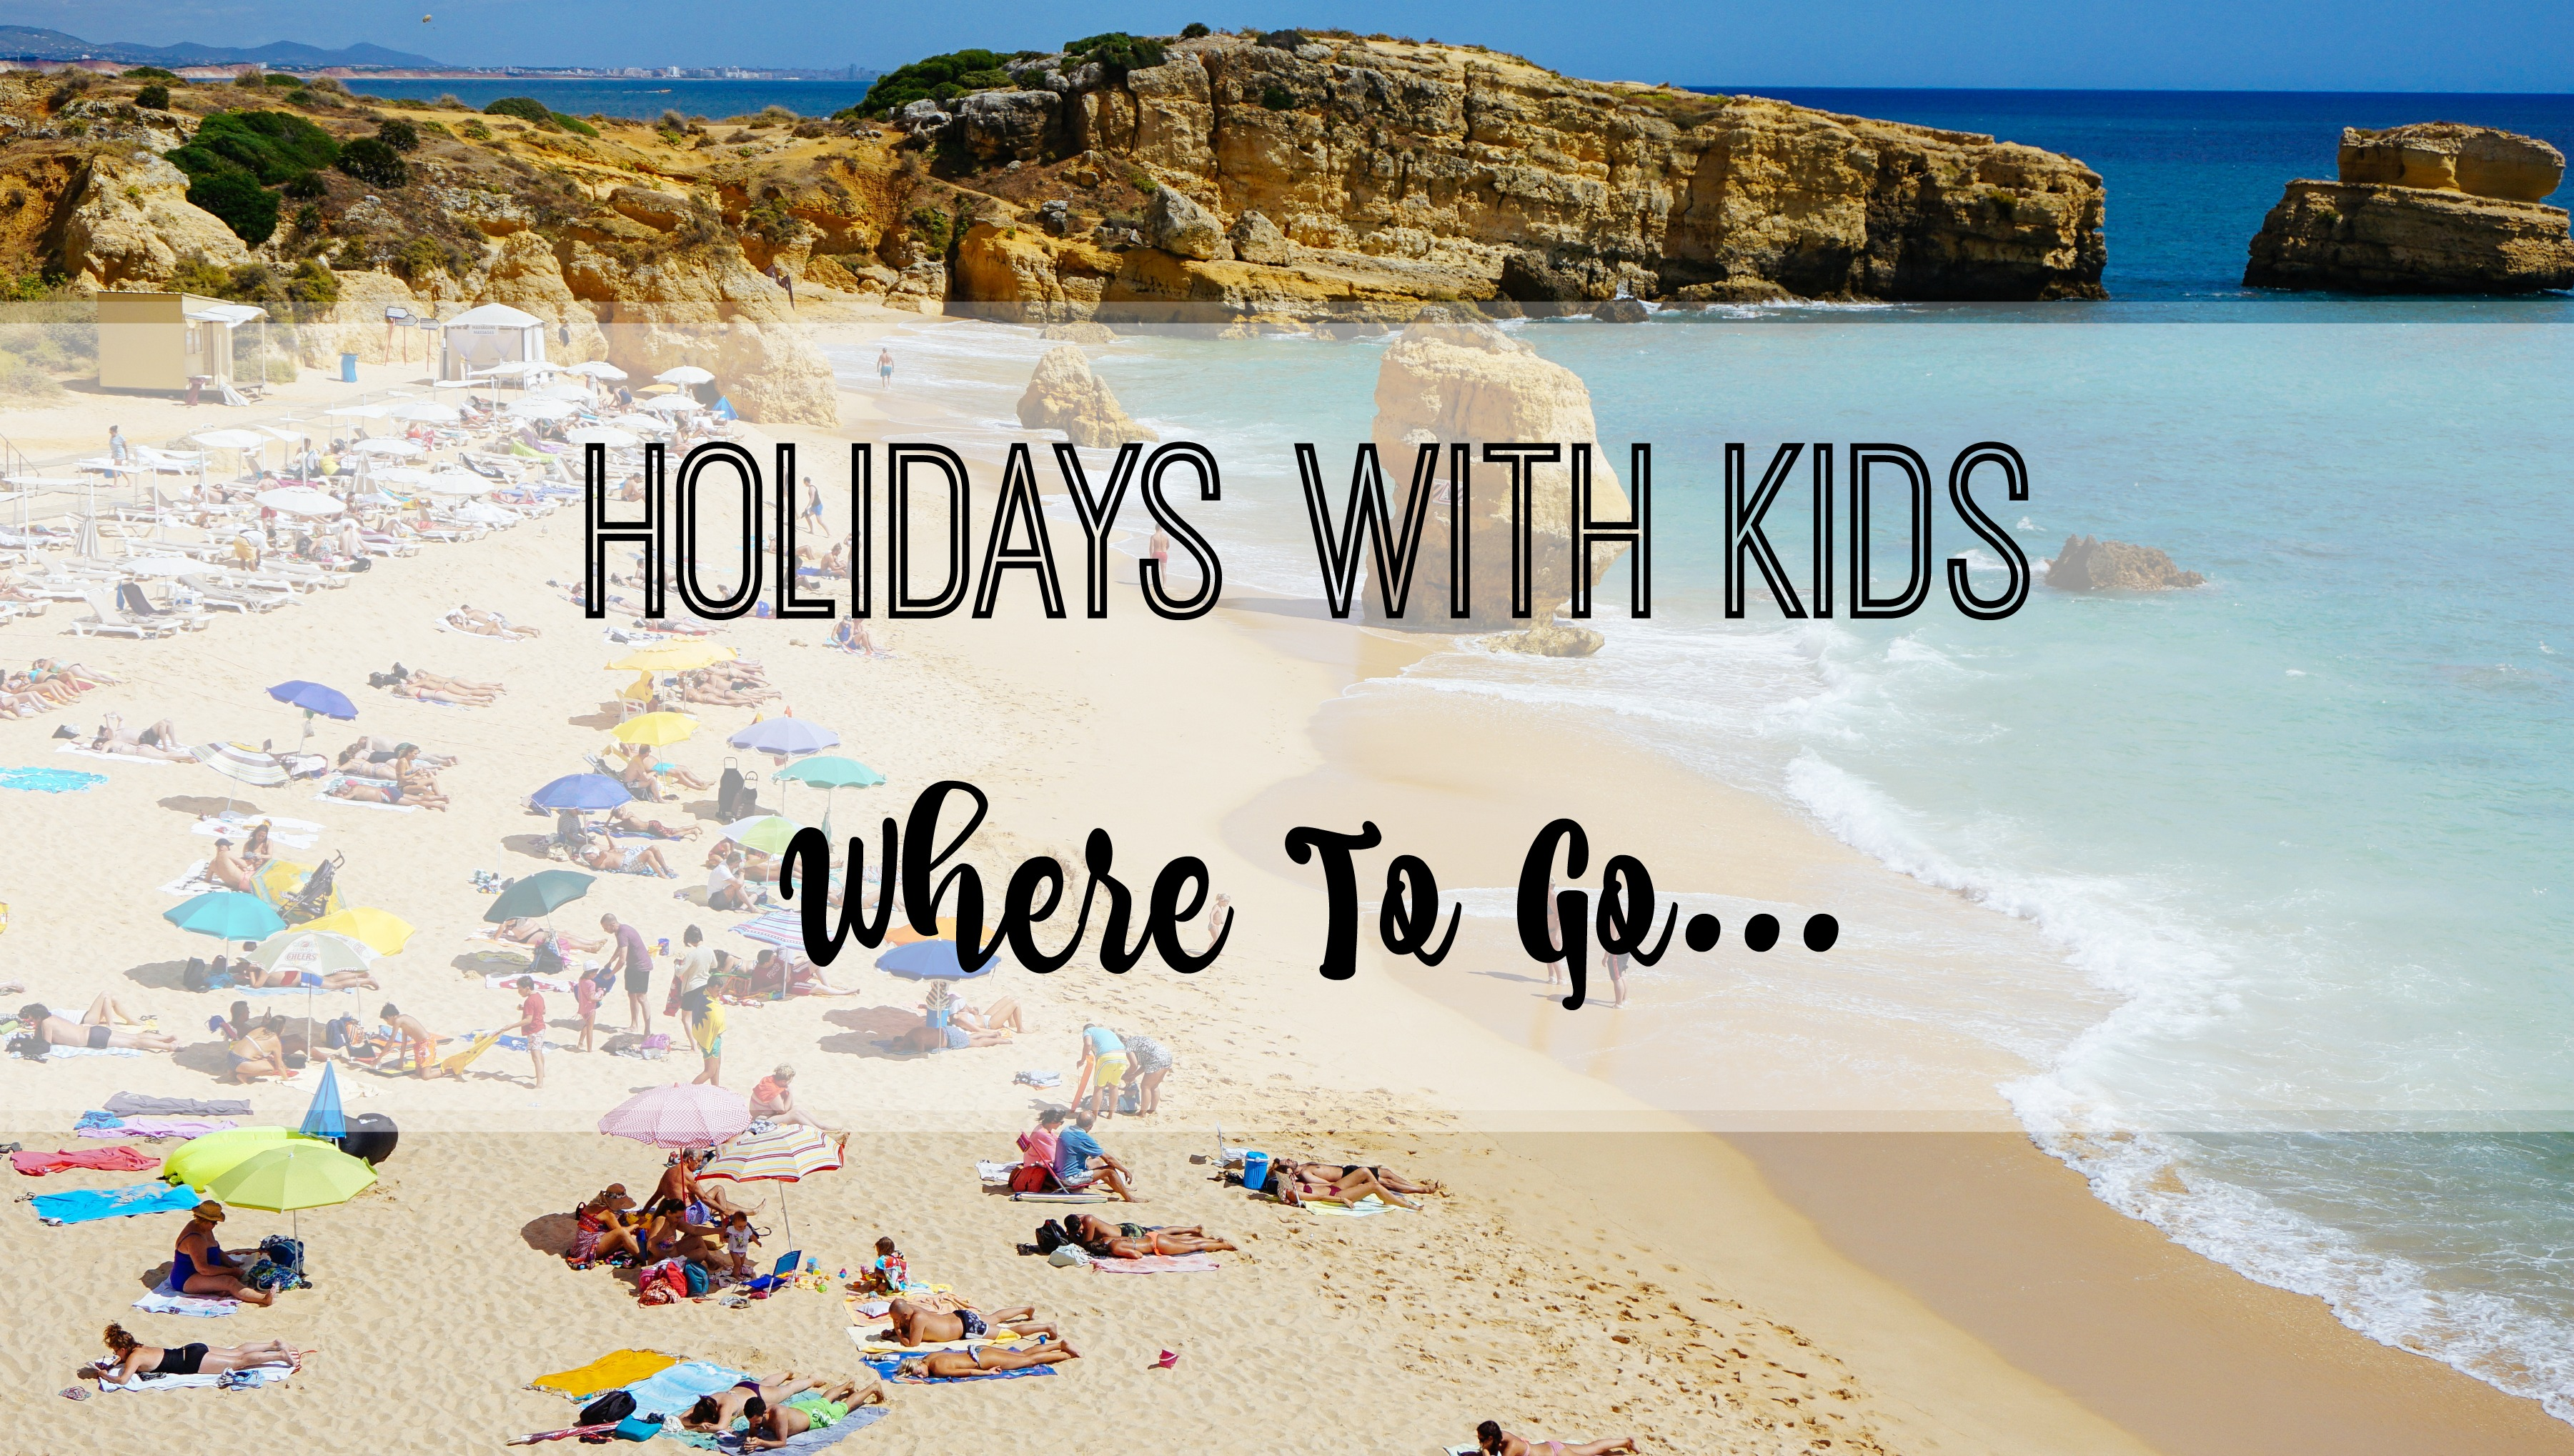 holidays with kids title